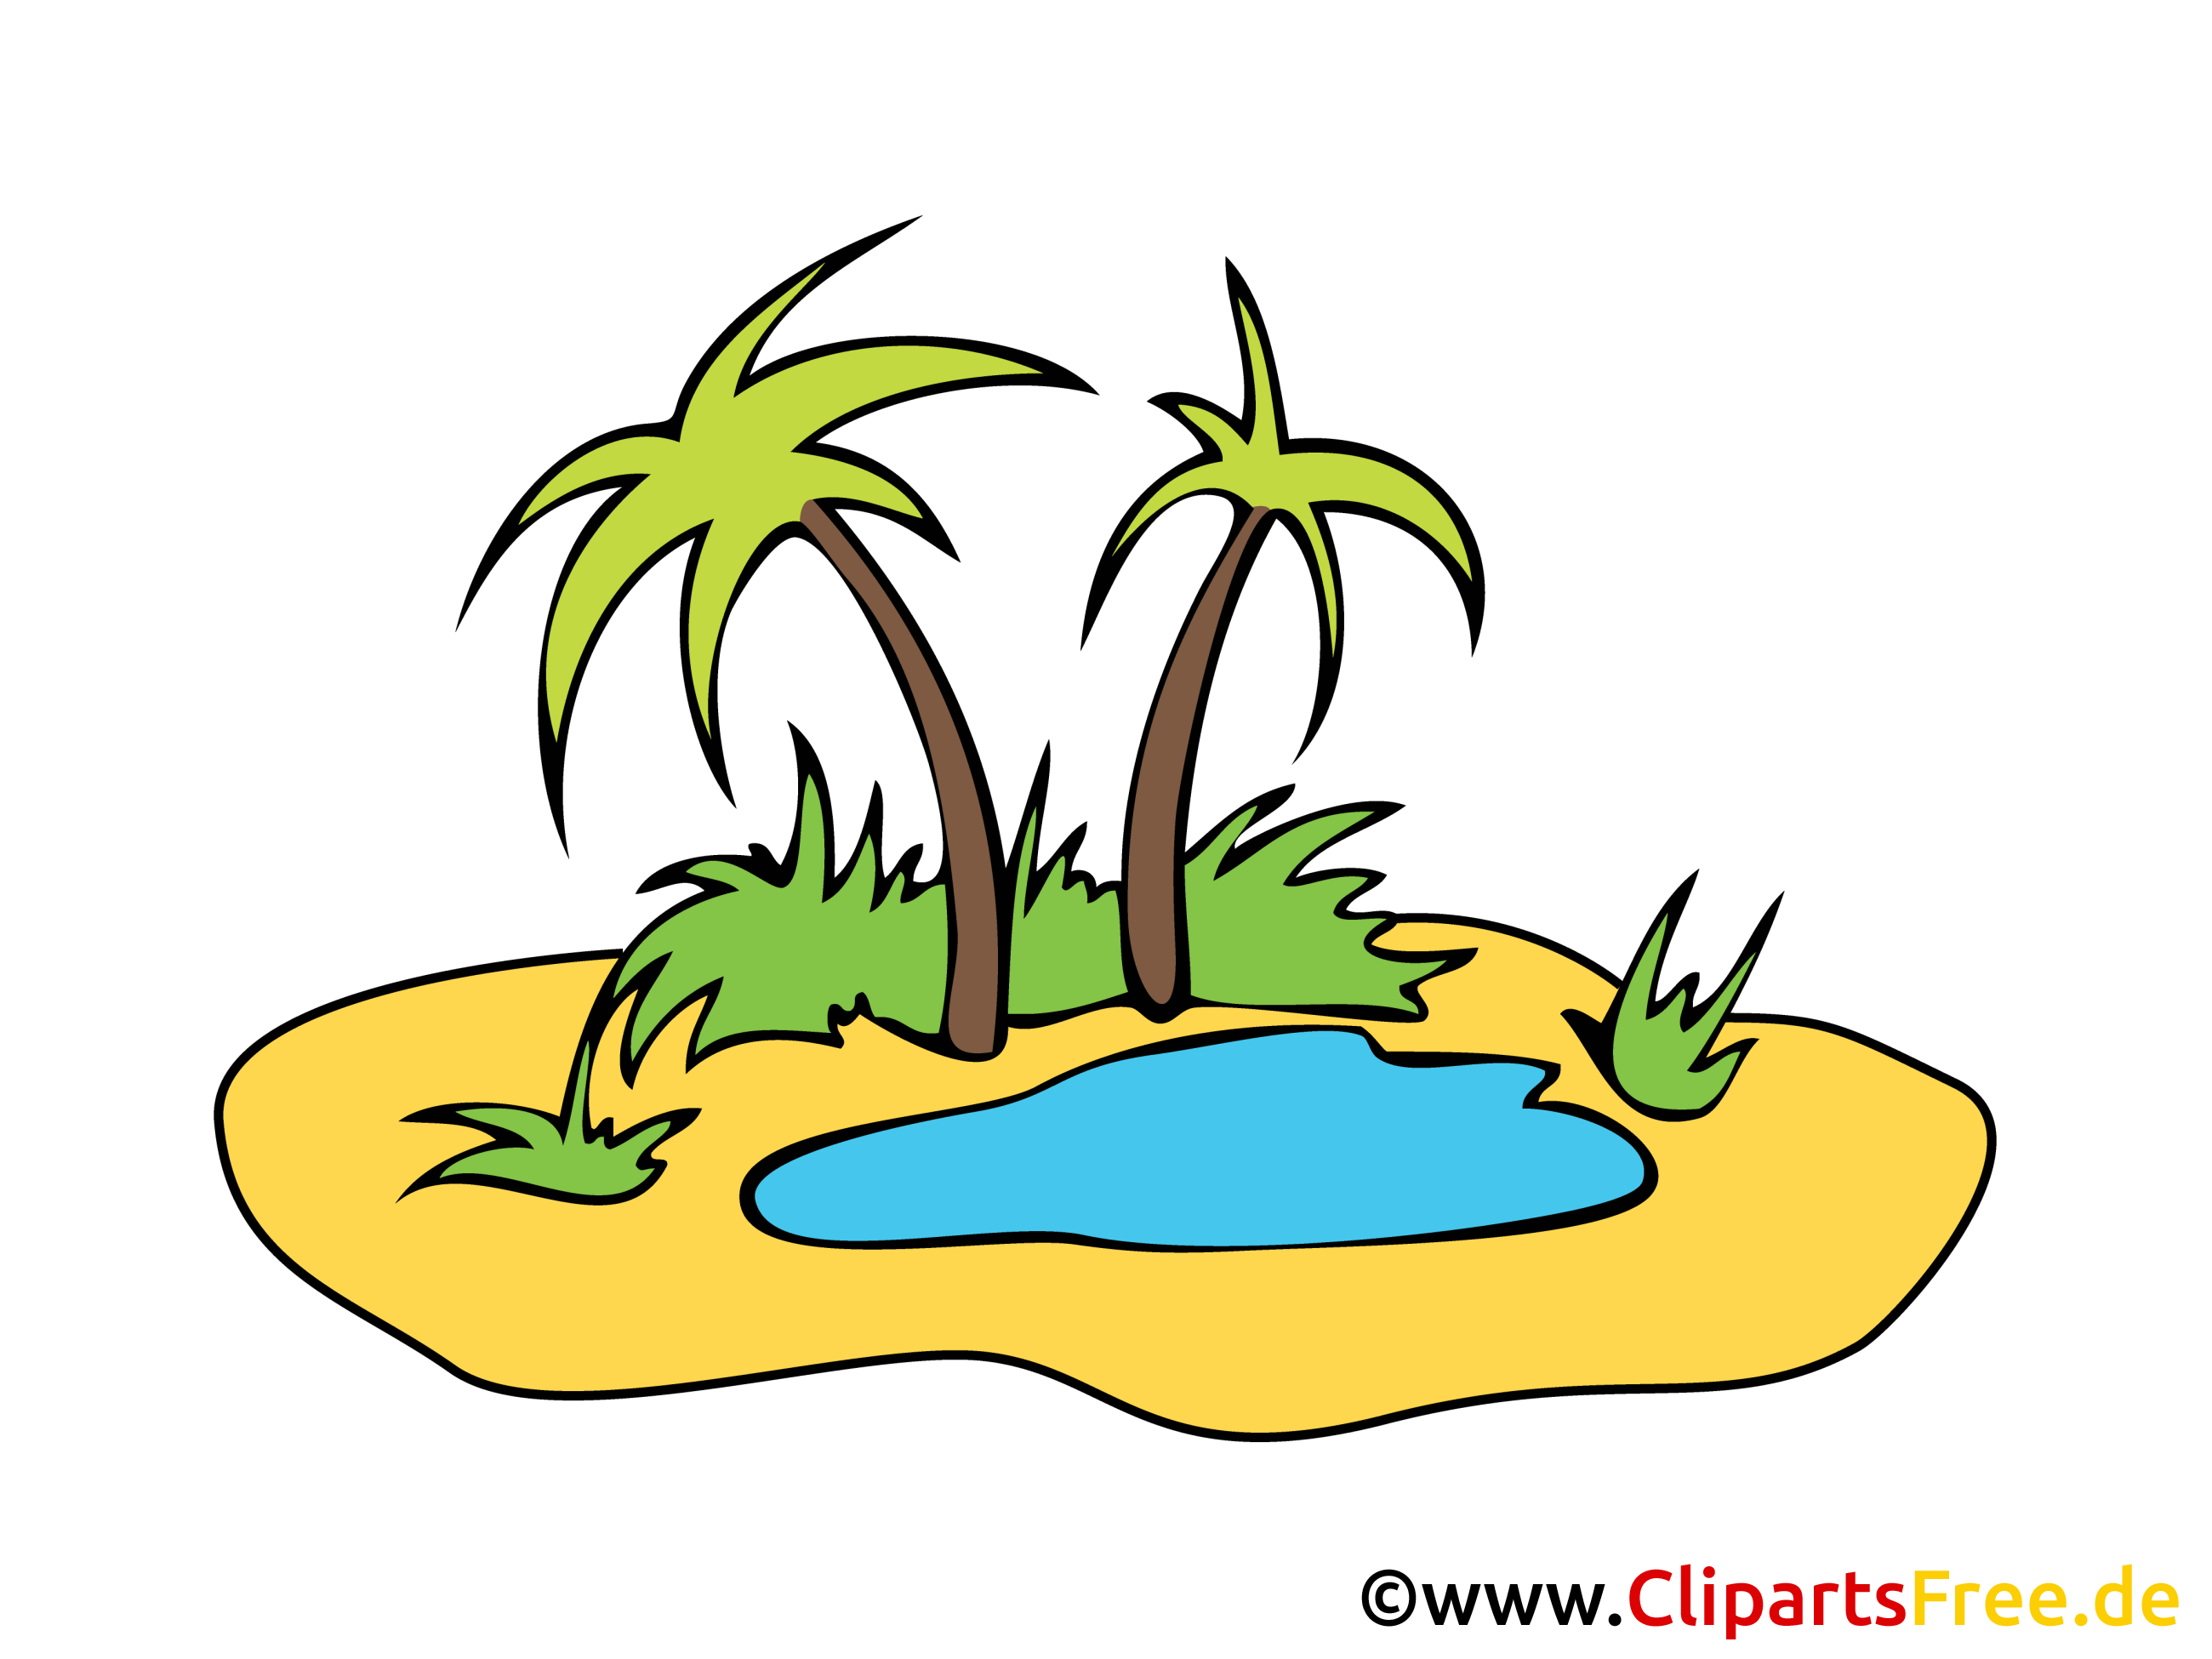 Oasis clipart #14